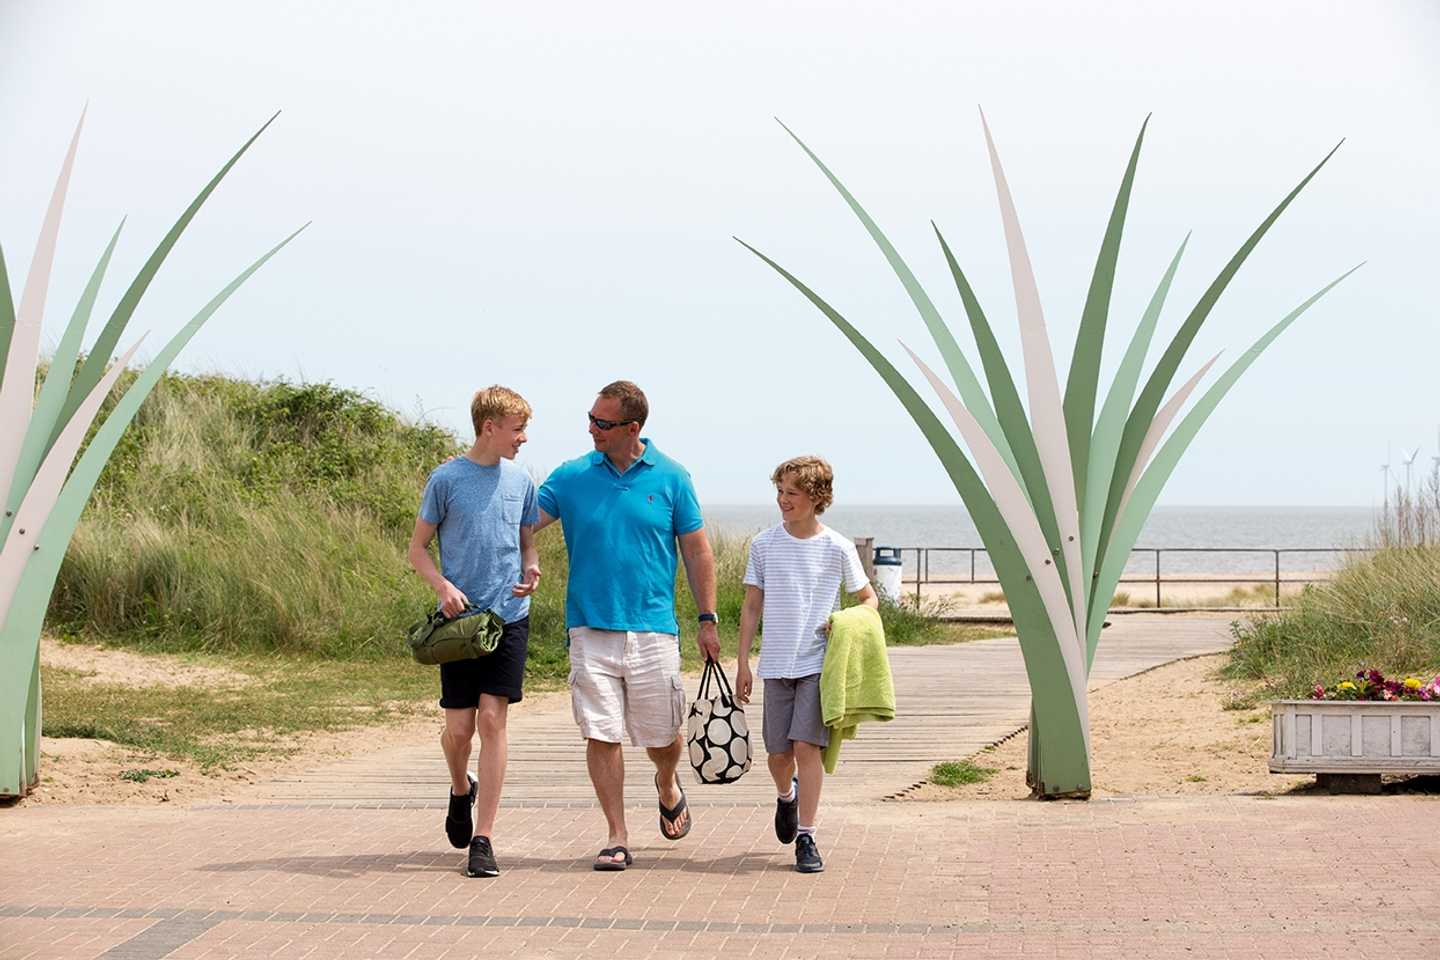 Family coming home from the beach via our direct access walkway